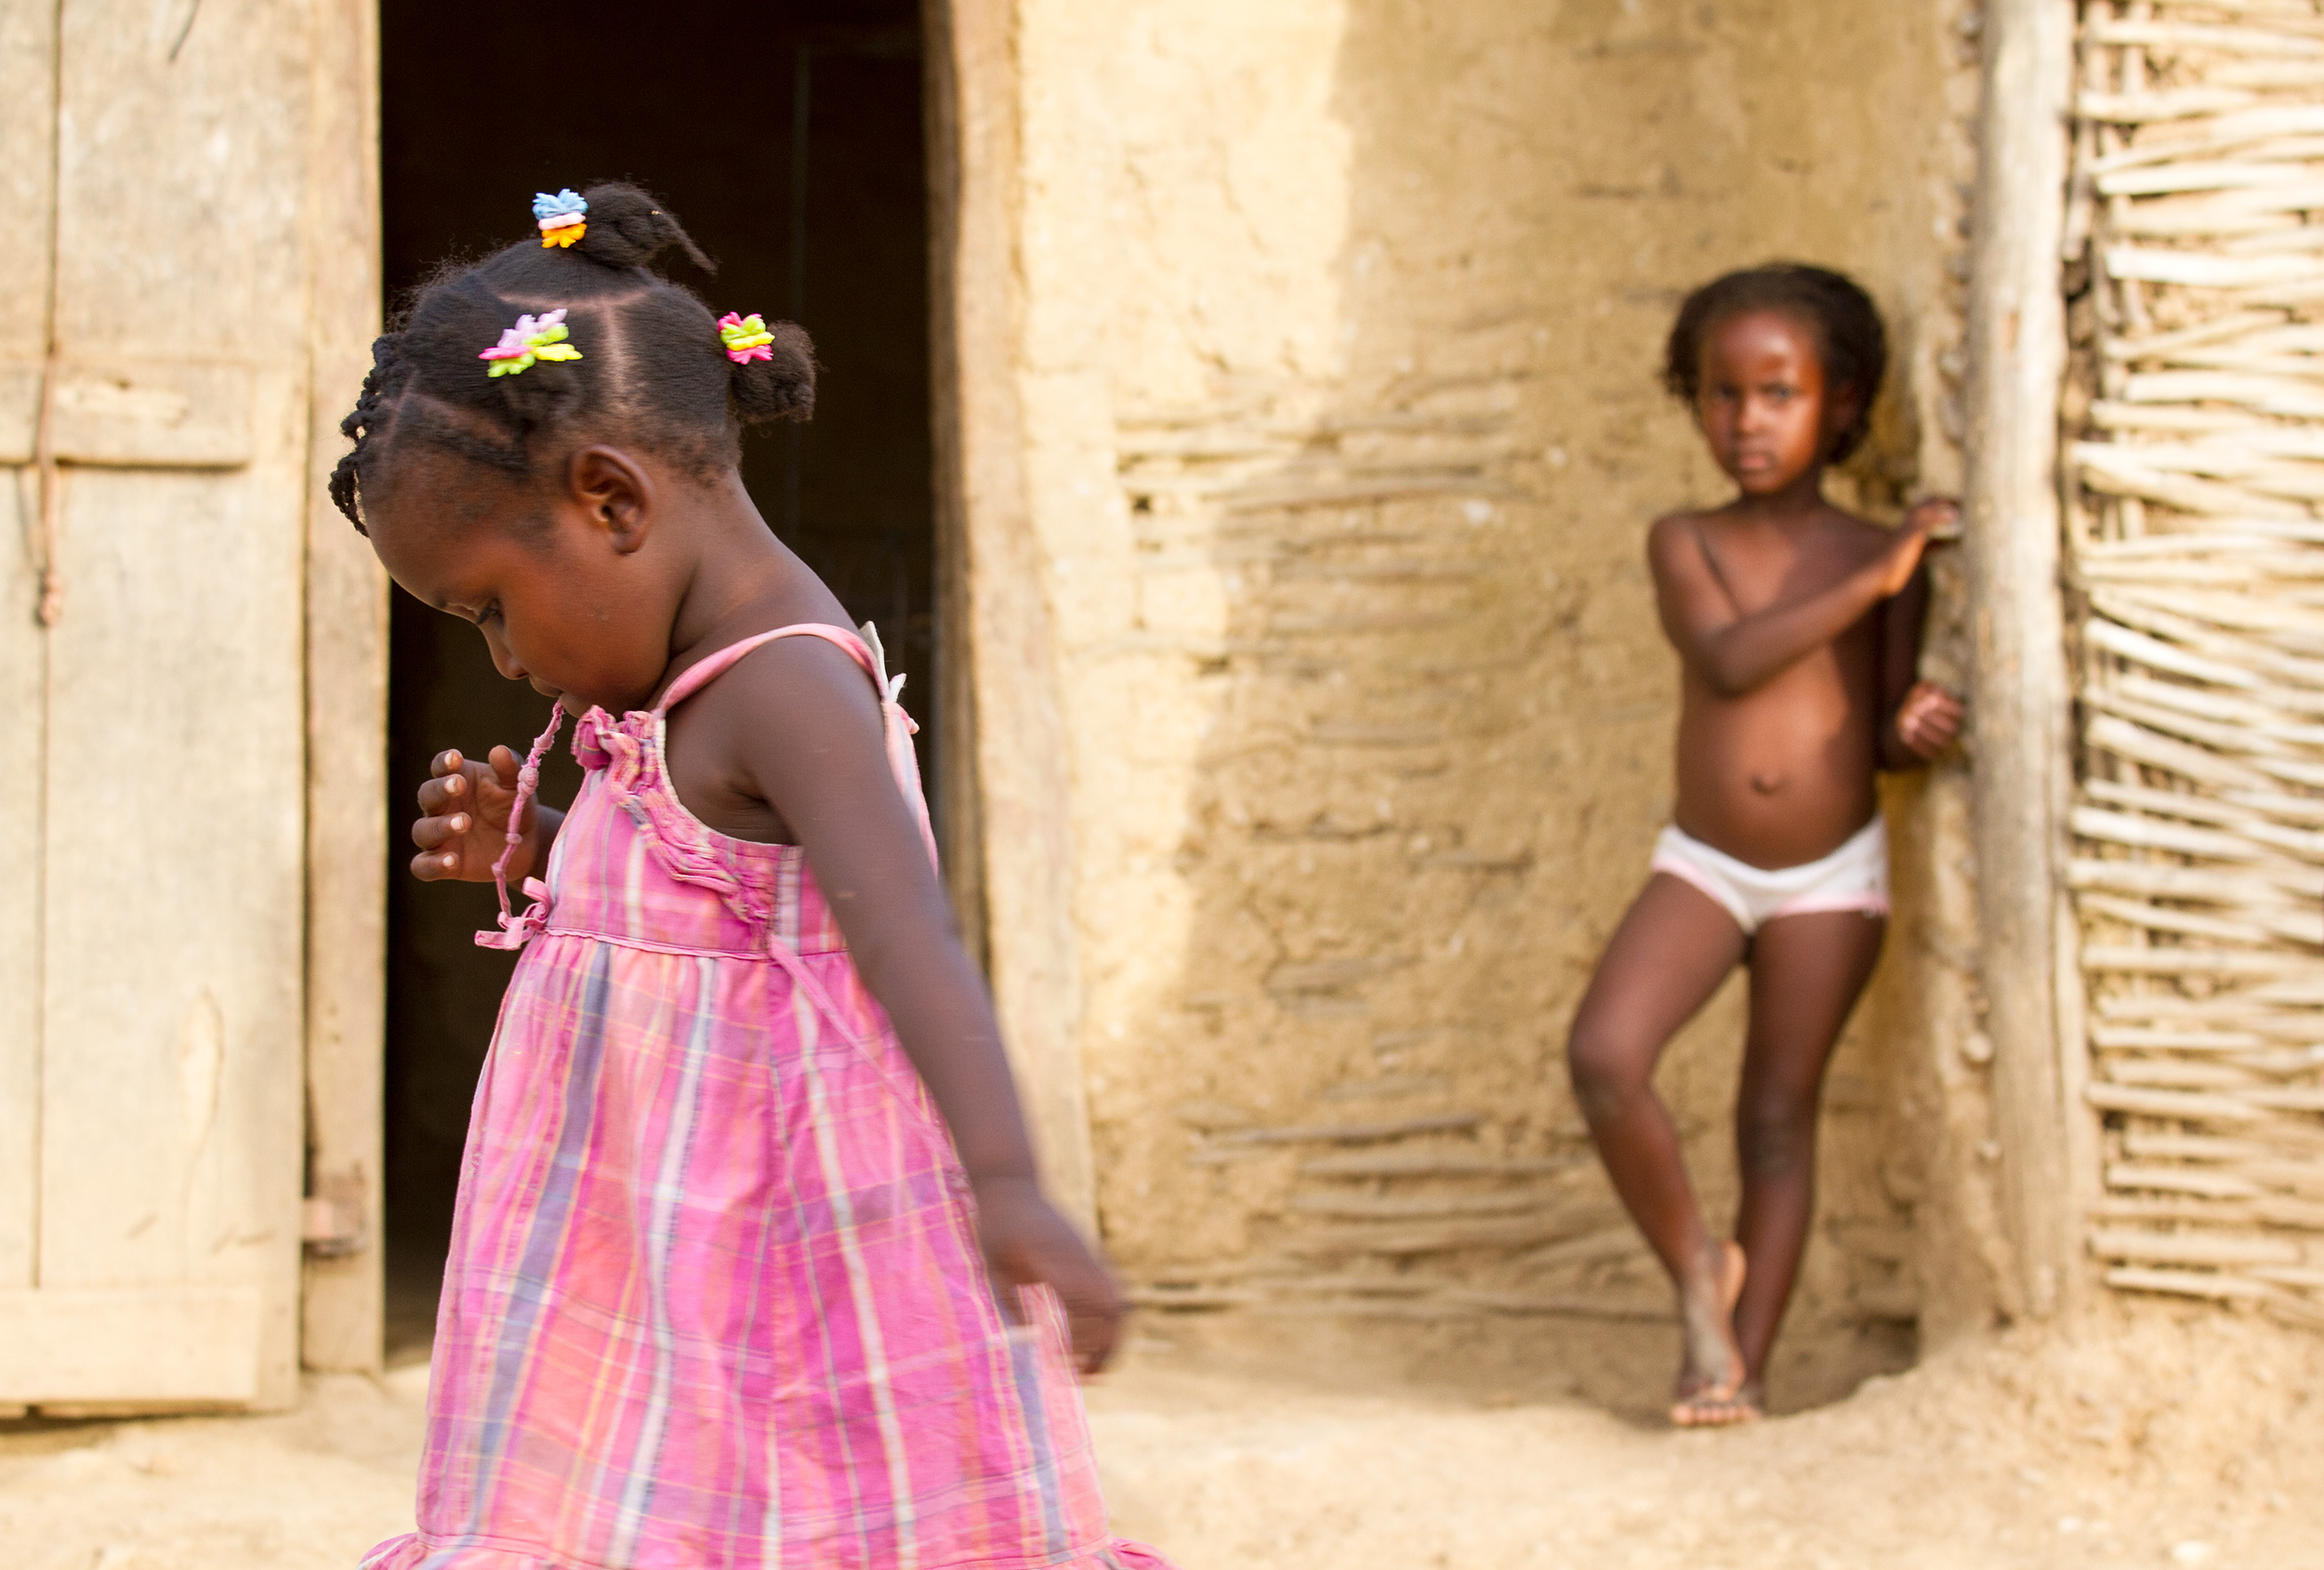 TRAVEL_HAITI_notforprofit_ngo_caribbean_pinkdress_girl_4159_WB2